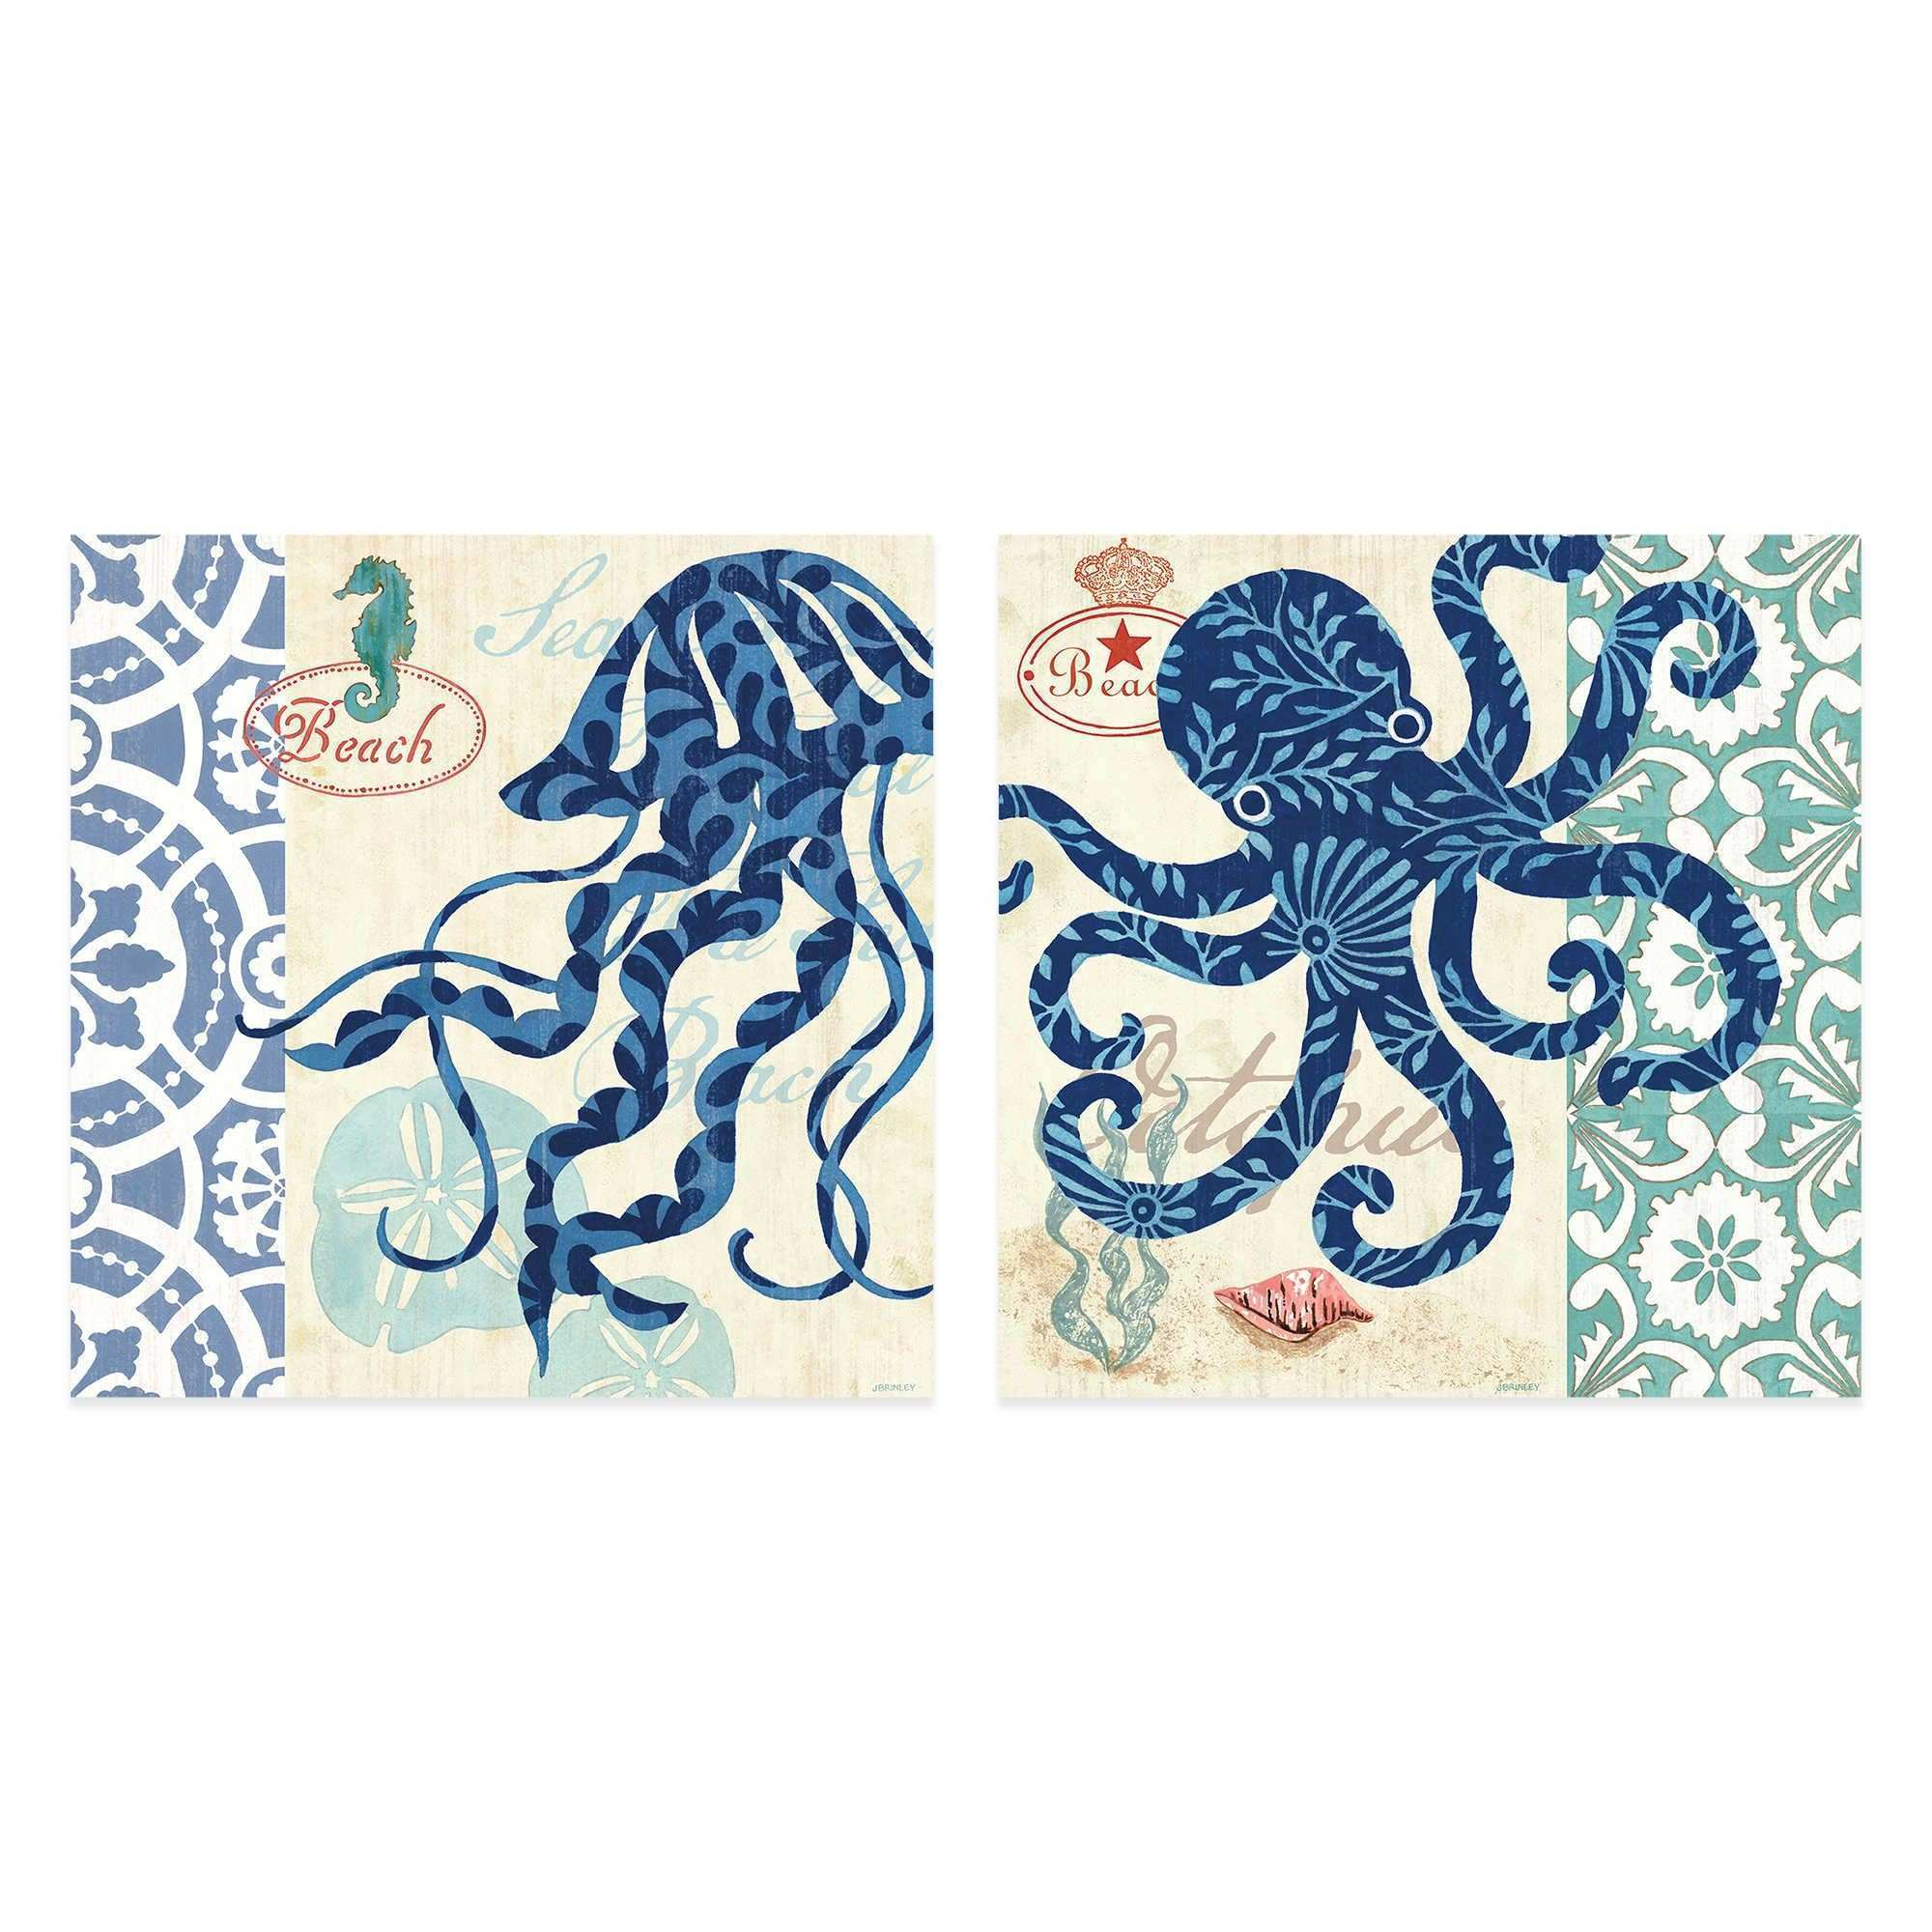 Sea Life Jellyfish Octopi 16 Inch x 16 Inch Embellished Canvas Wall